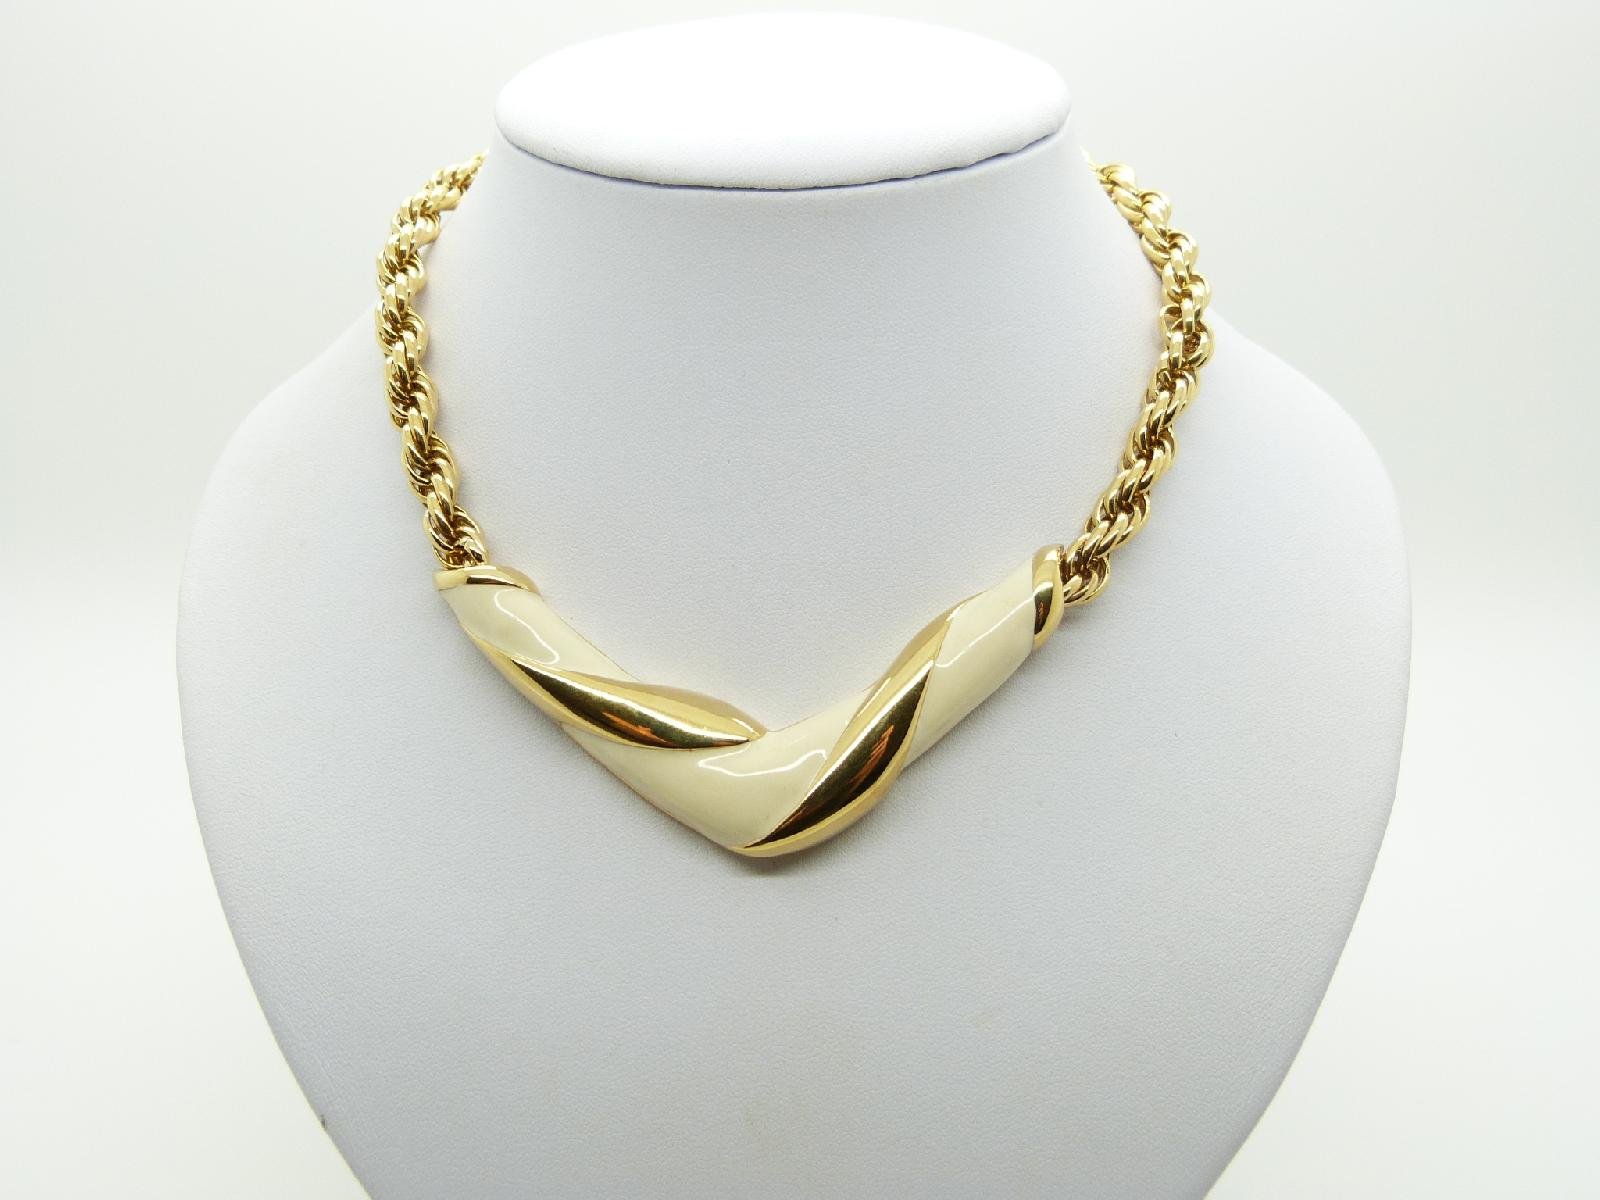 £24.00 - Vintage 80s Quality Designer Cream Enamel and Goldtone V Shaped Necklace